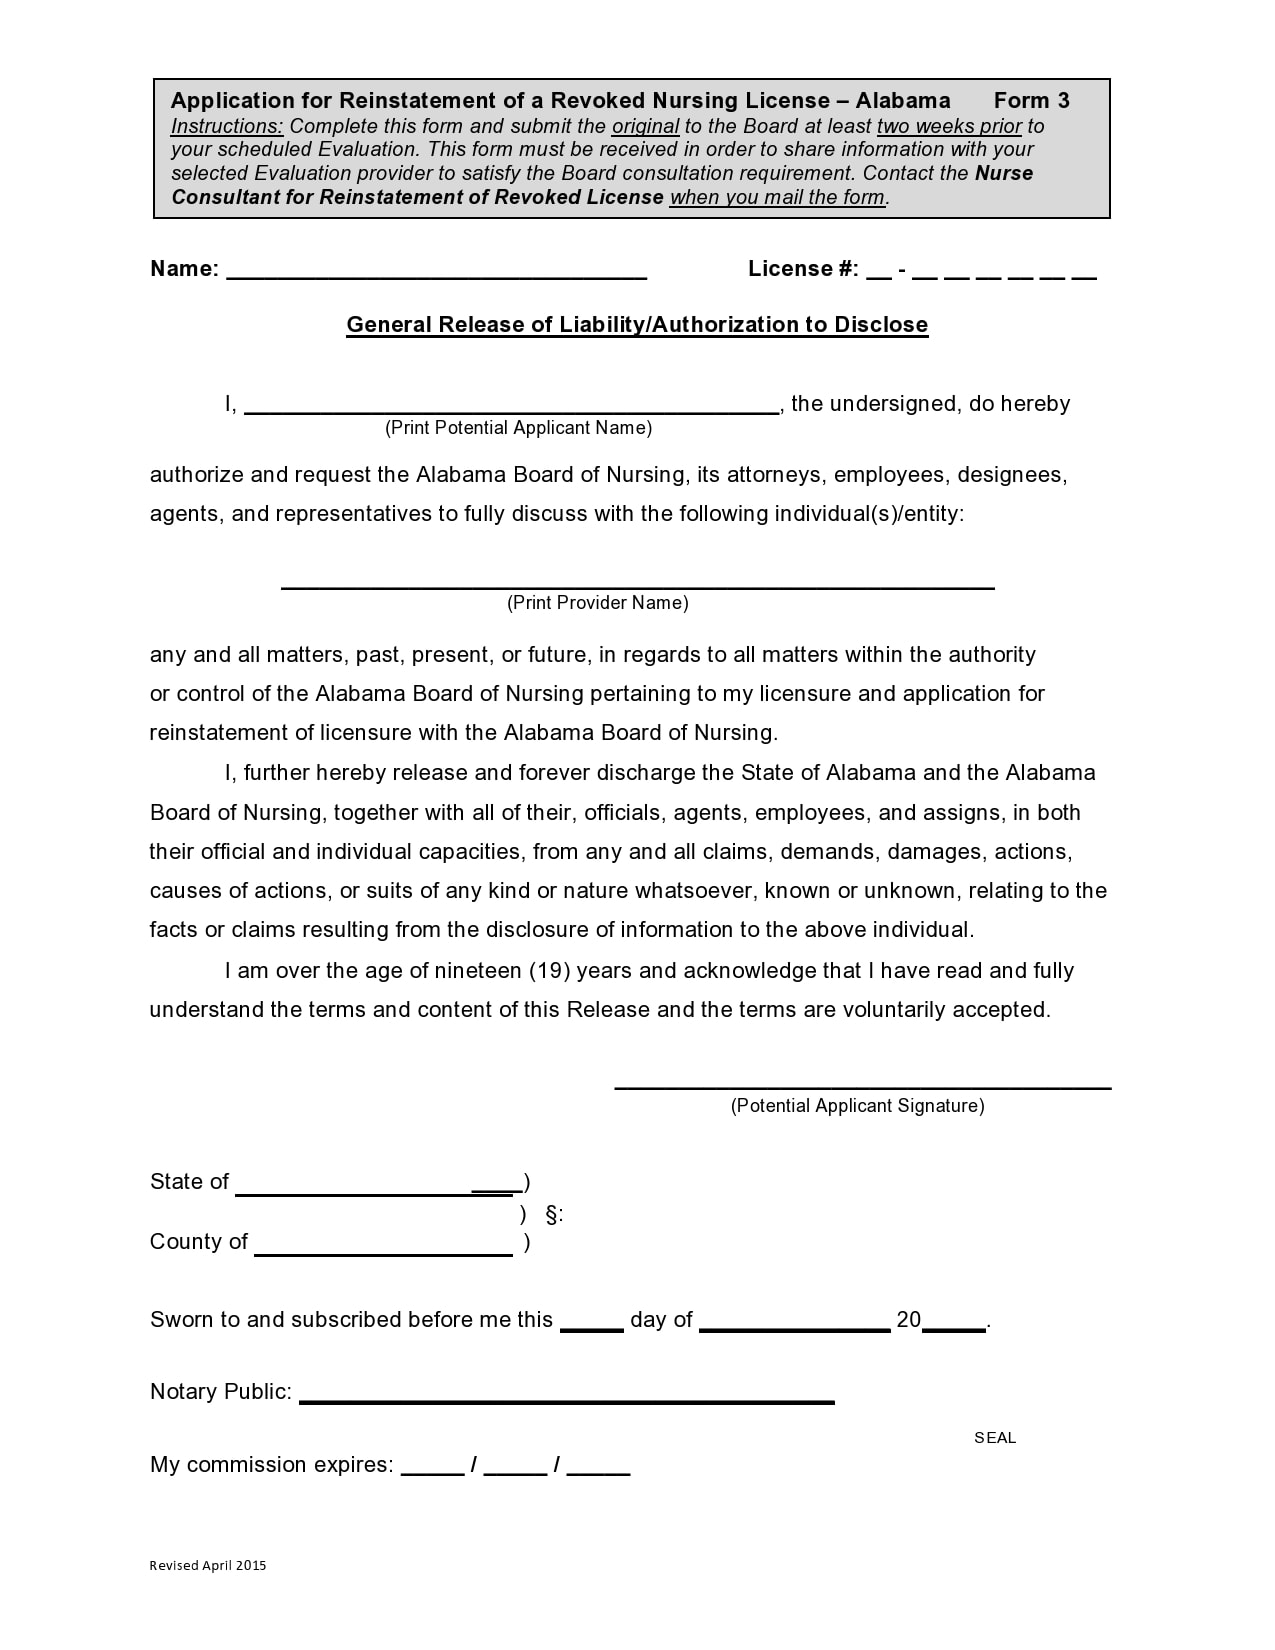 general release of liability form 24